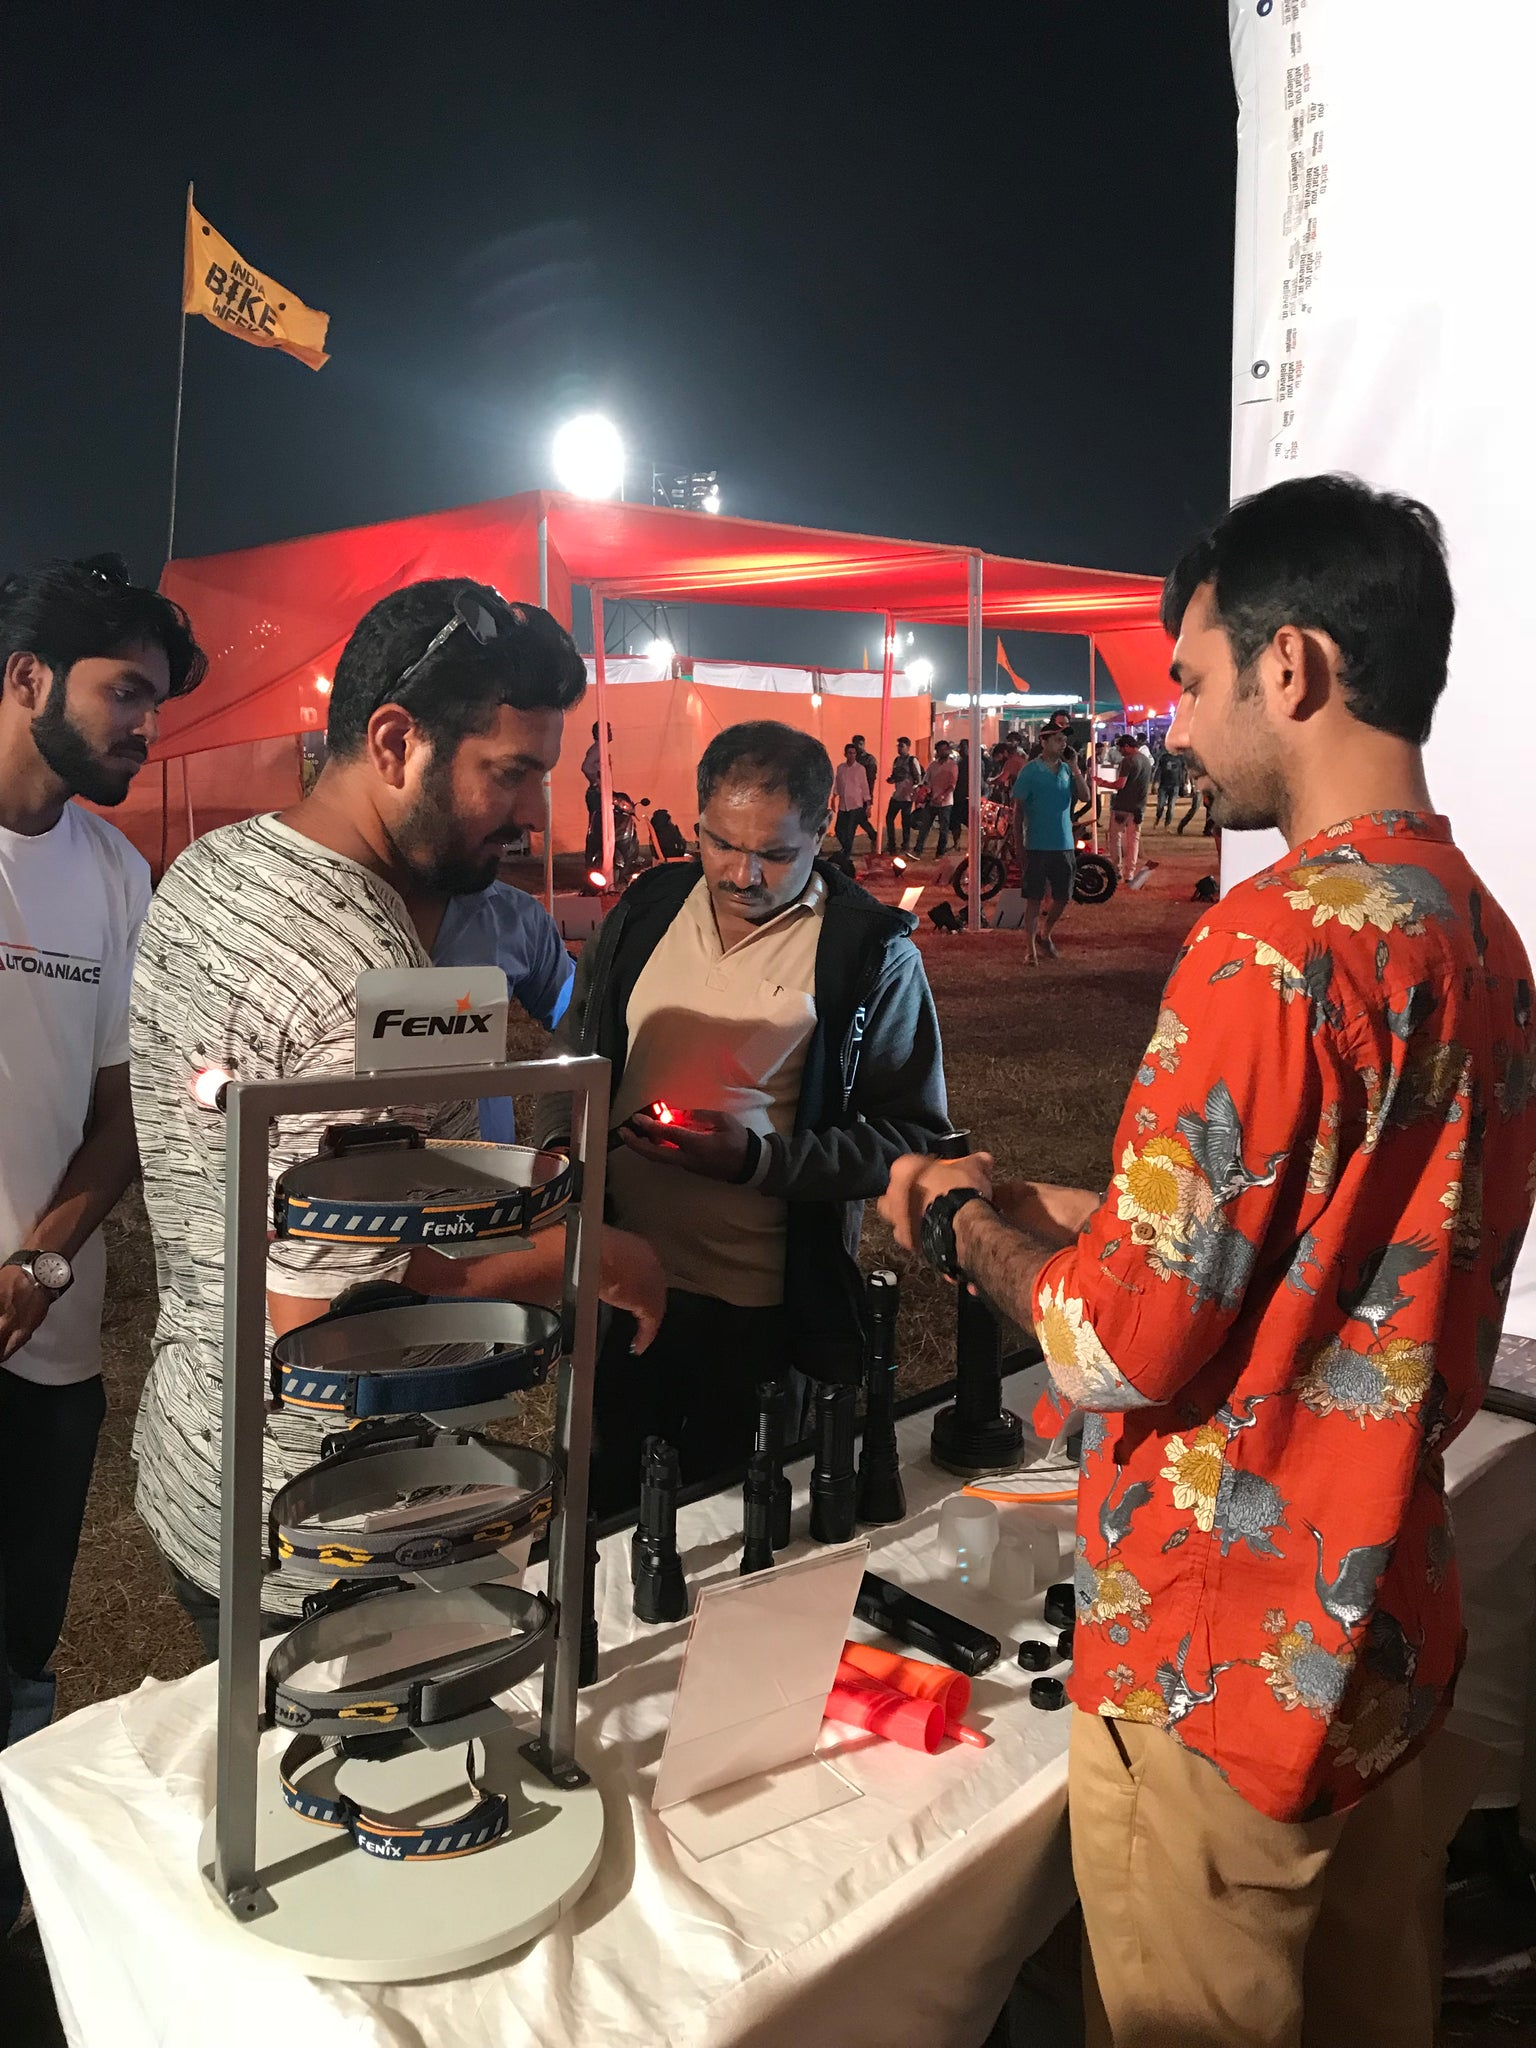 Glimpse of LightMen at IBW 2017, Lightmen at Indian Bike Week, Exhibitor of Fenix Flashlights